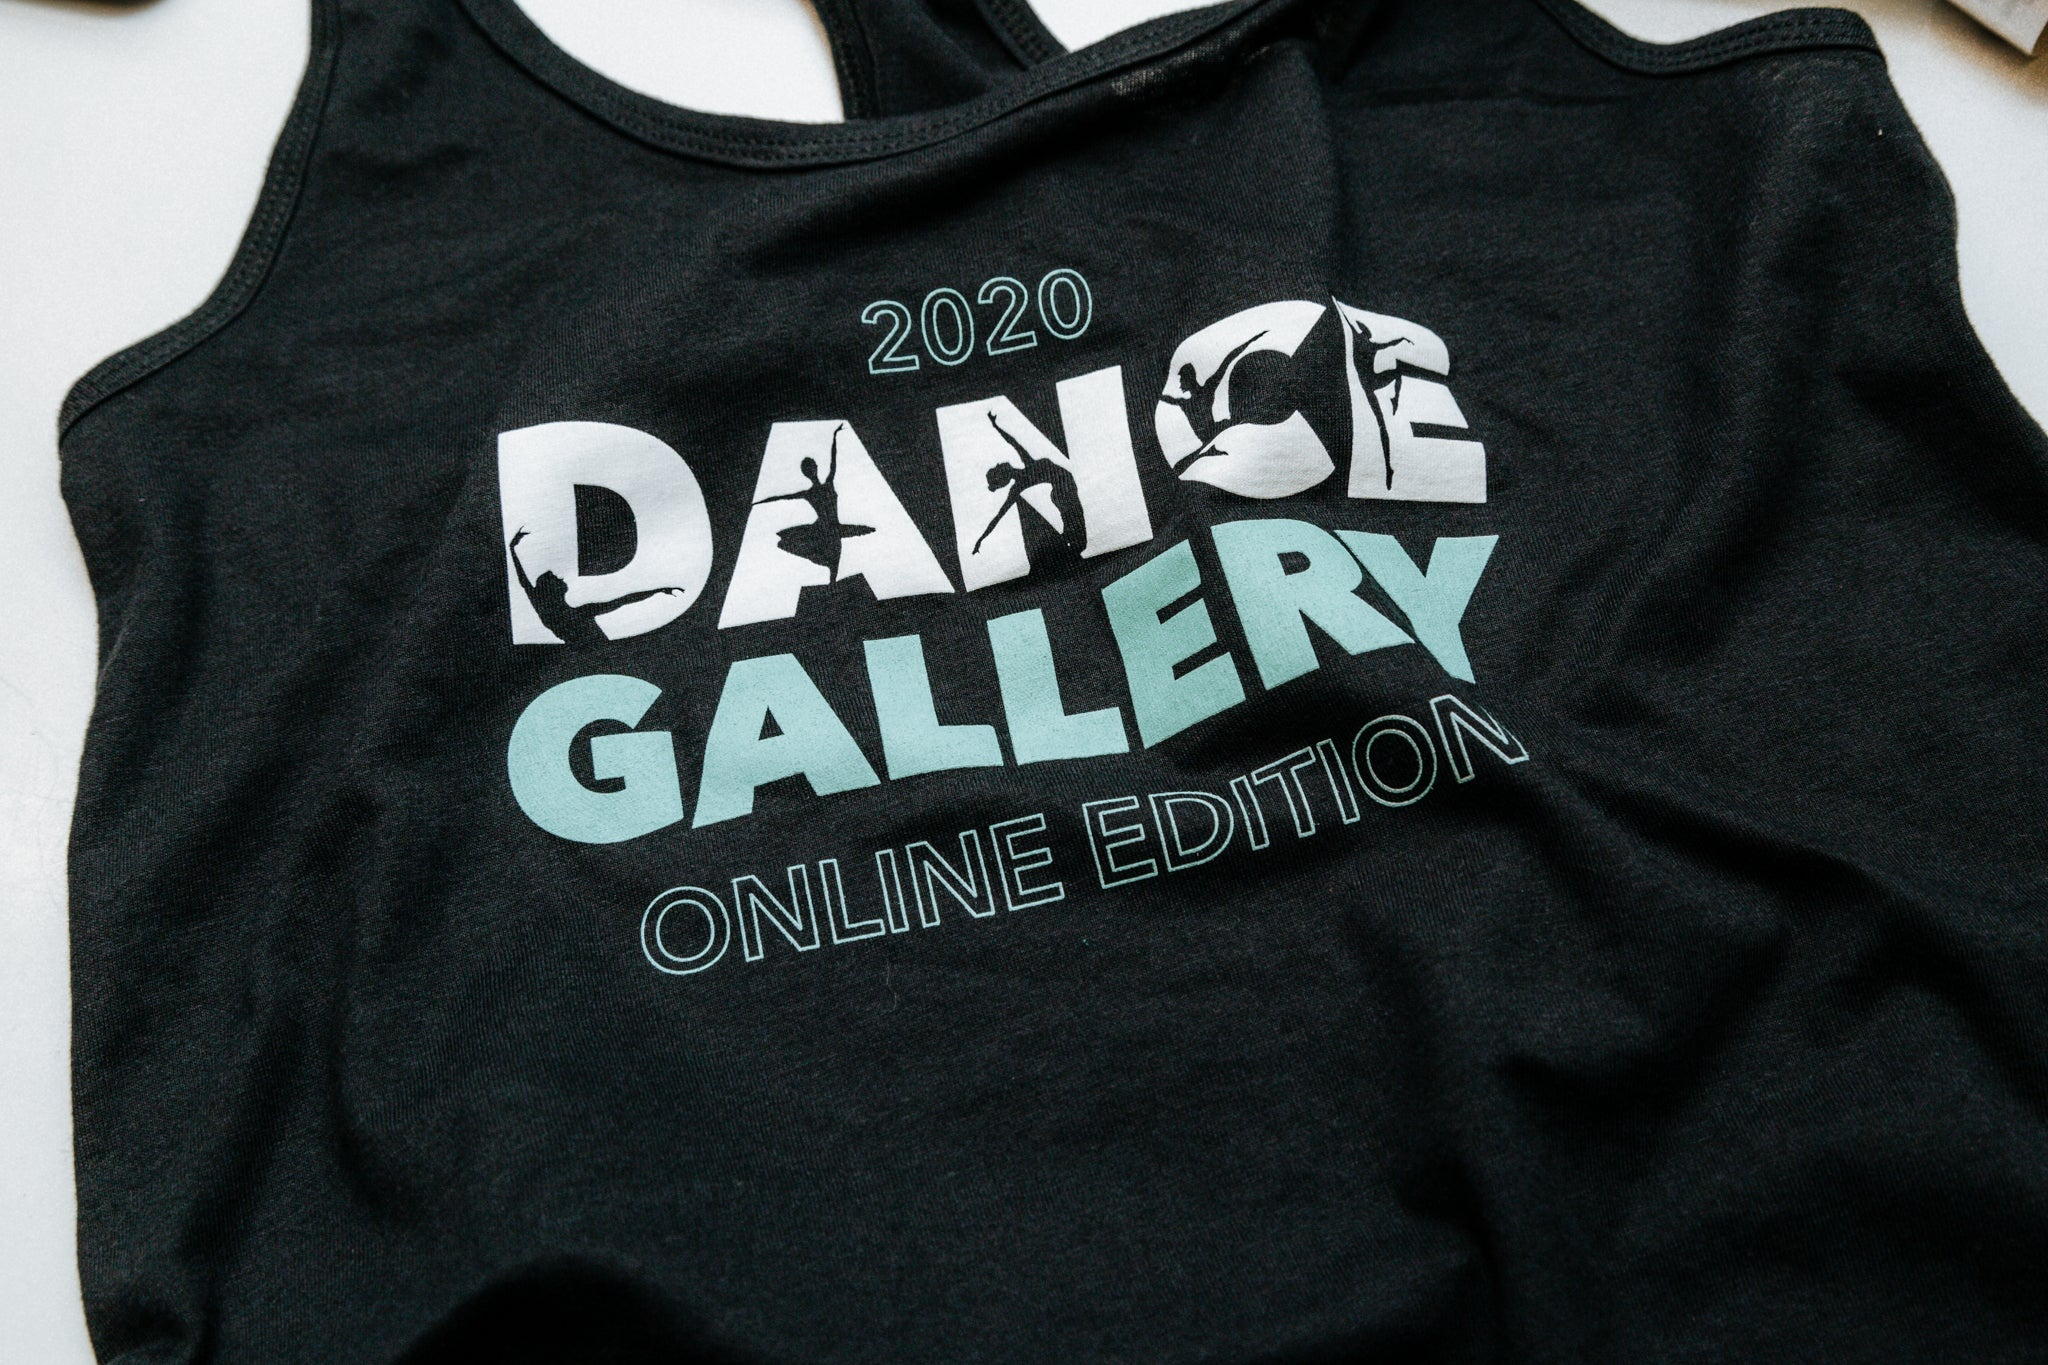 Dance Gallery of South Dakota 2020 Shirt Design